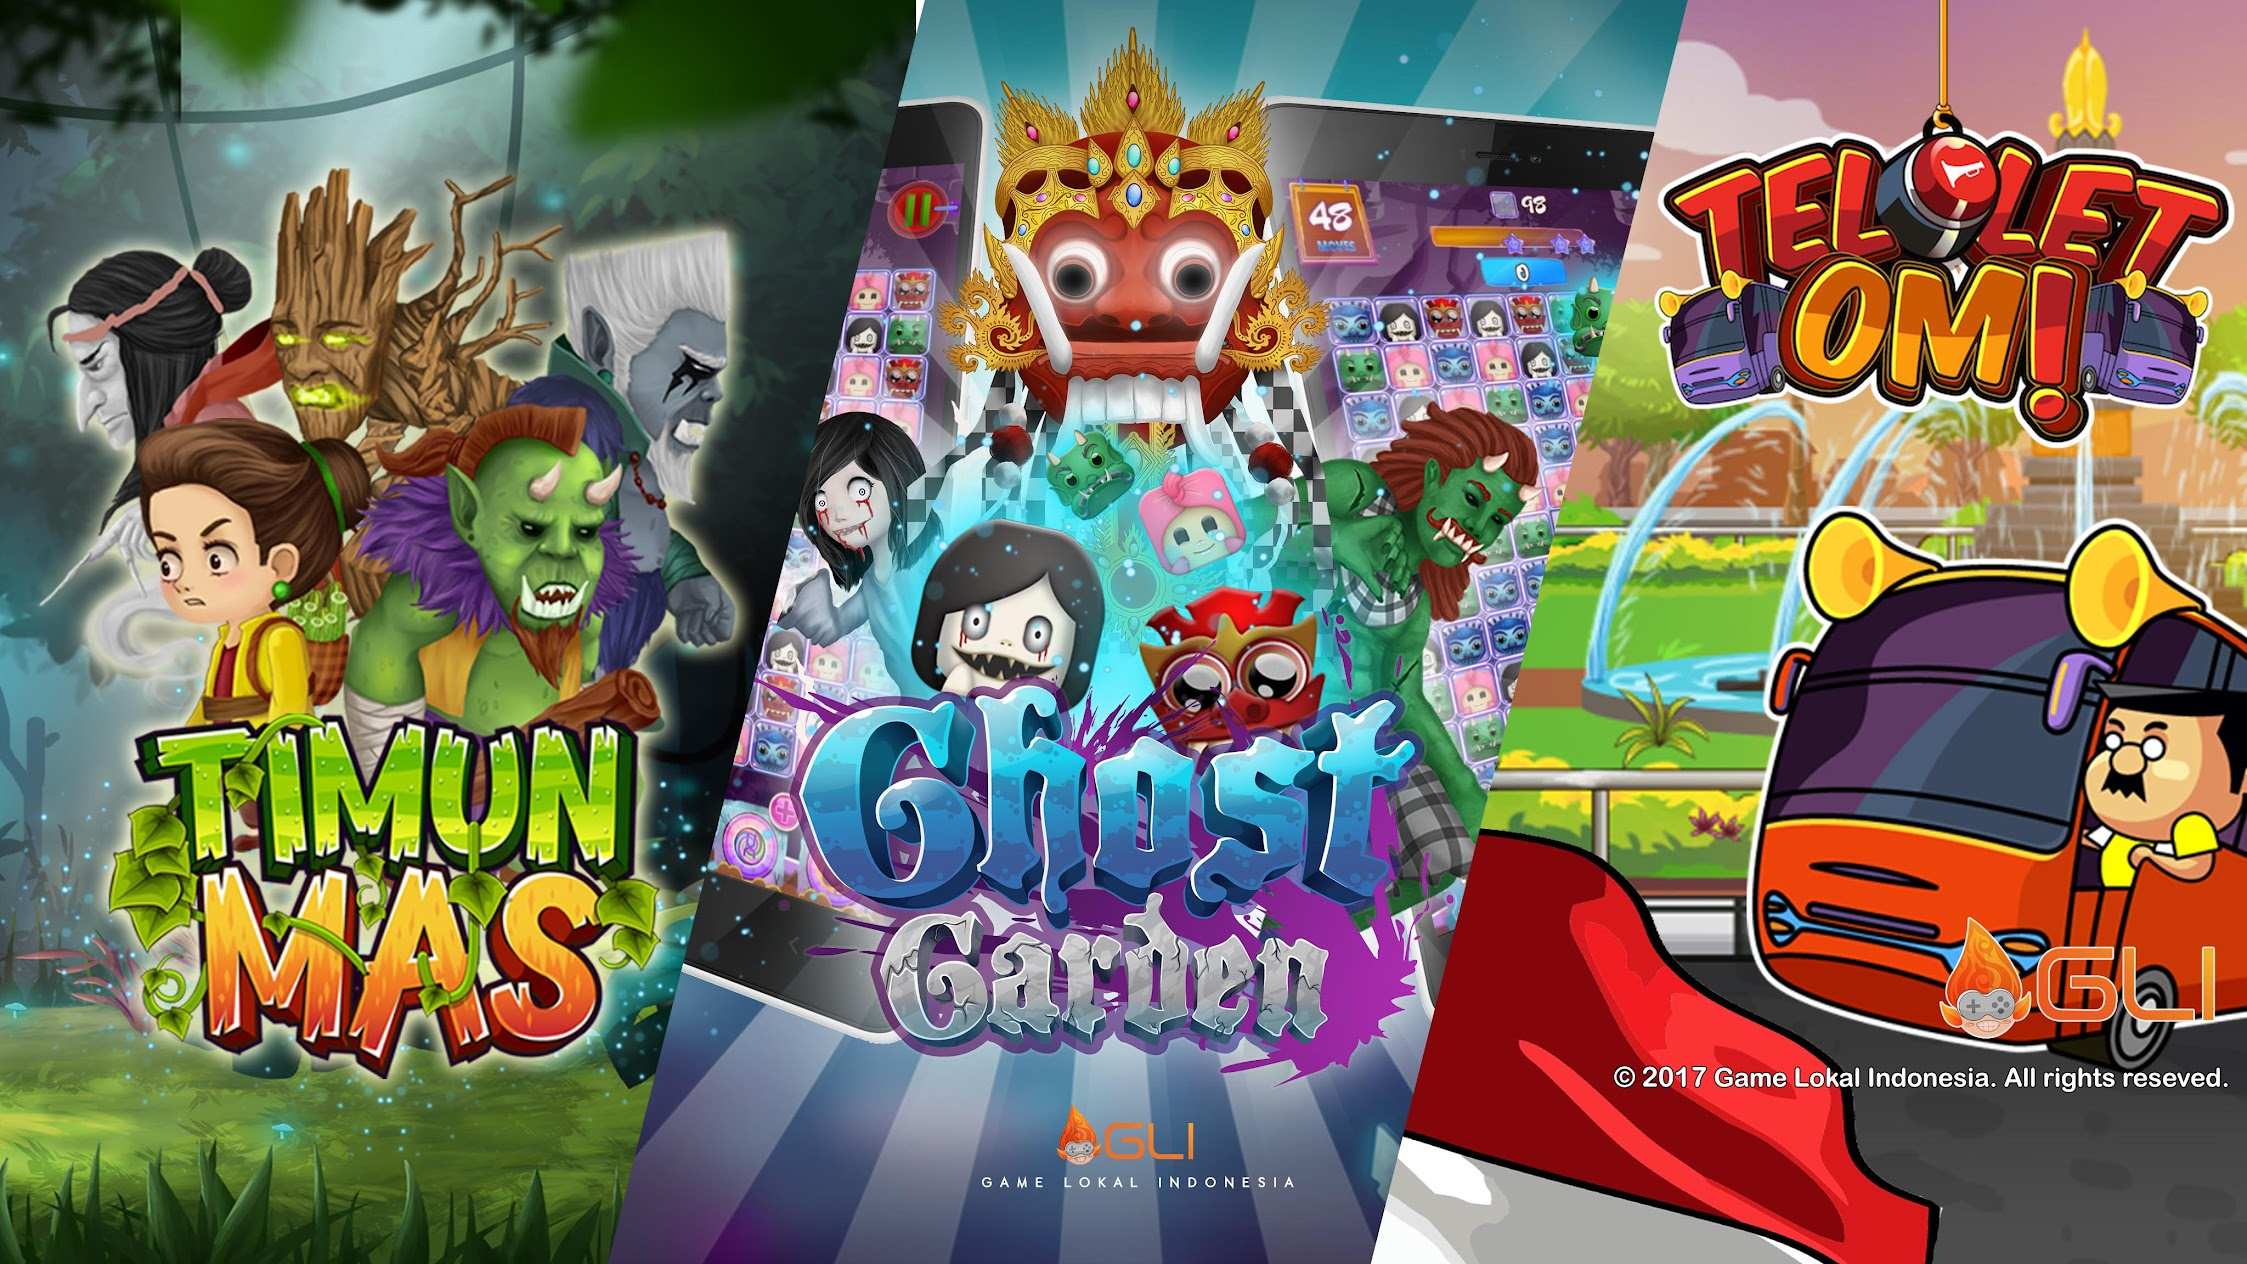 Android Apps by Game Lokal Indonesia on Google Play